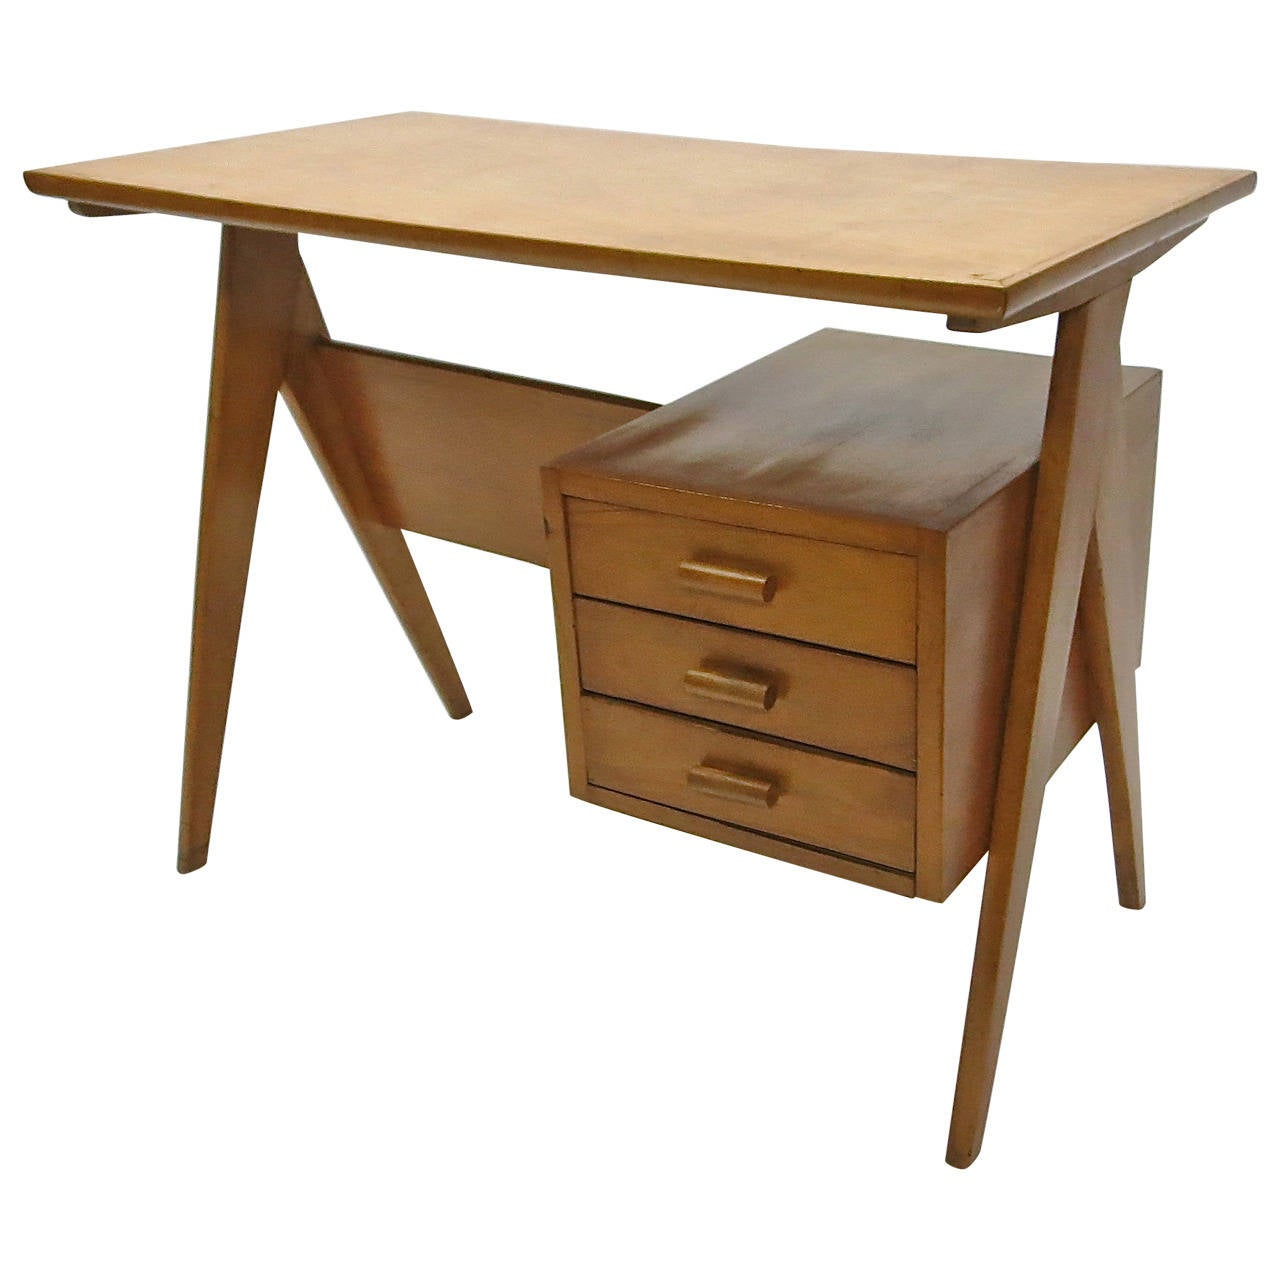 Childs Desk Attributed To Gio Ponti Original Condition Italy Circa 1950 For